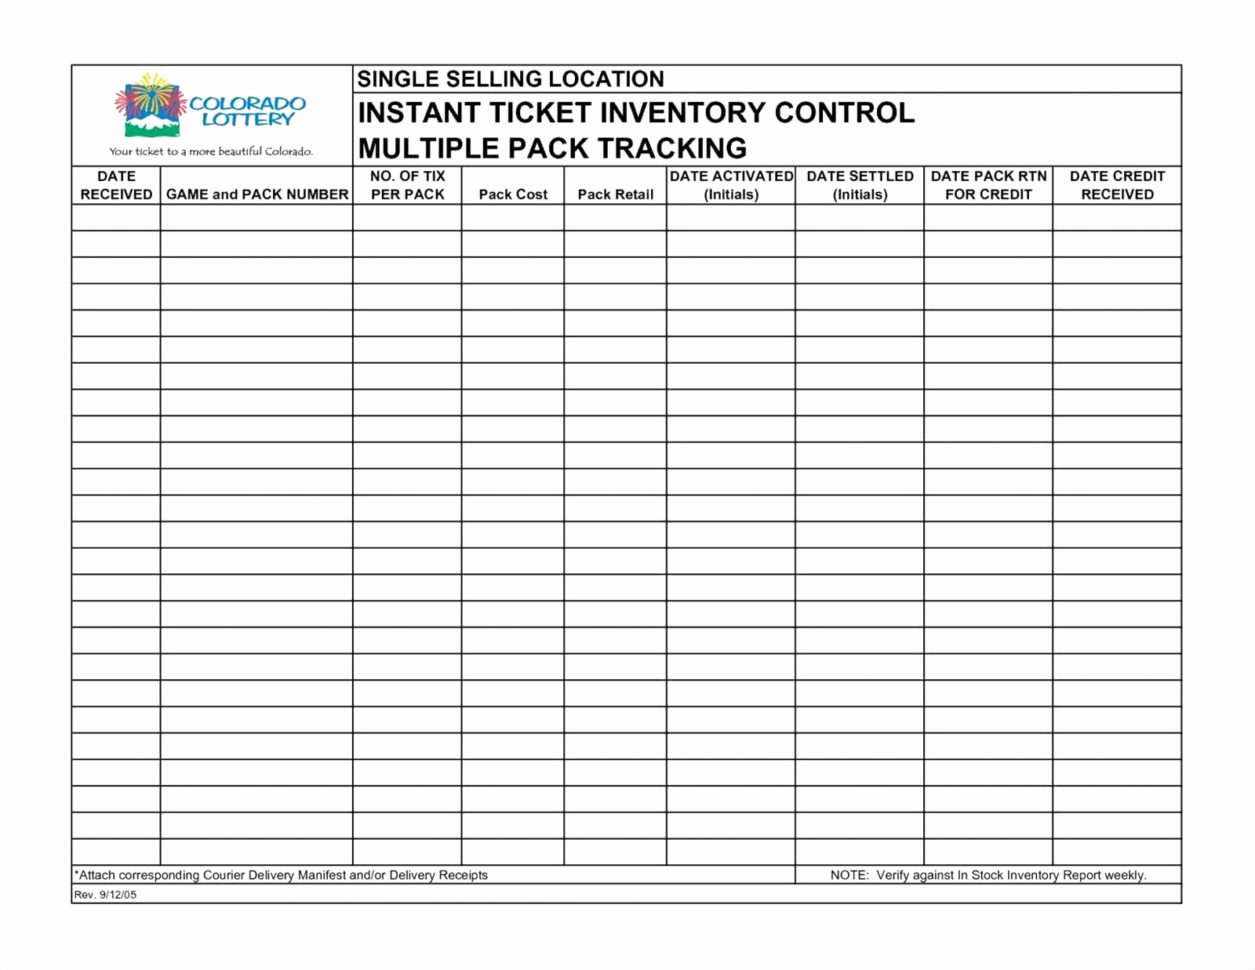 Weekly Inventory Spreadsheet New Free Seed Inventory Spreadsheet Intended For Examples Of Inventory Spreadsheets